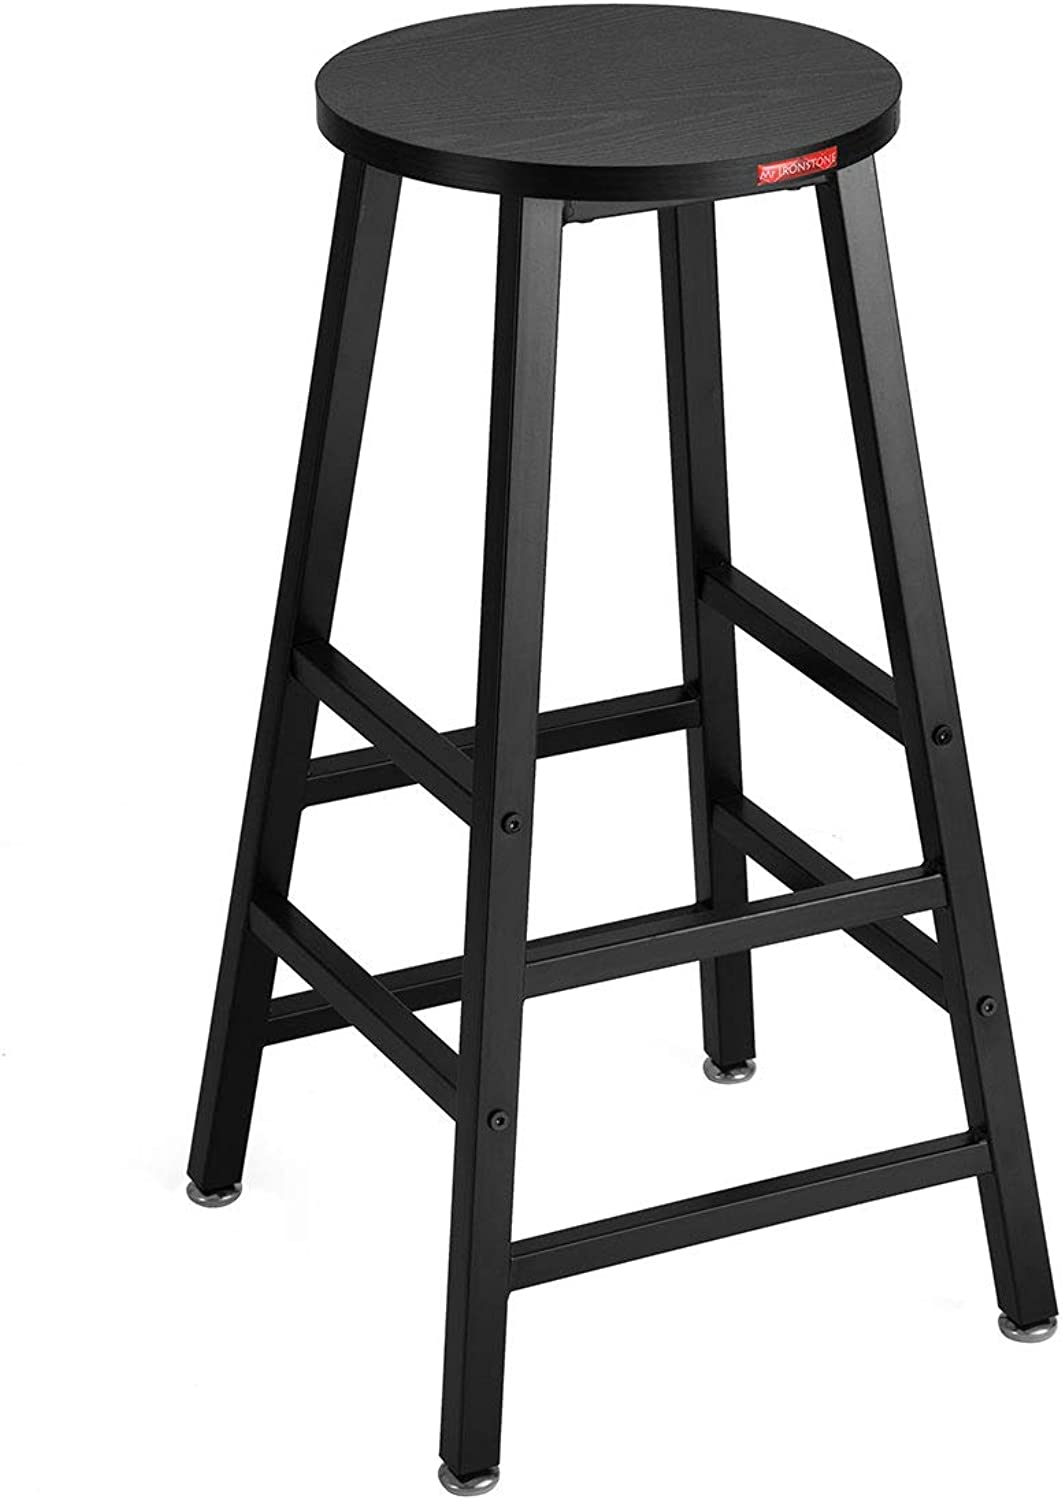 Mr IRONSTONE Bar Stool Black Pub Height Bar Stool, 27.7  Pub Dining Height Stools Bistro Table Chairs Wood Grain